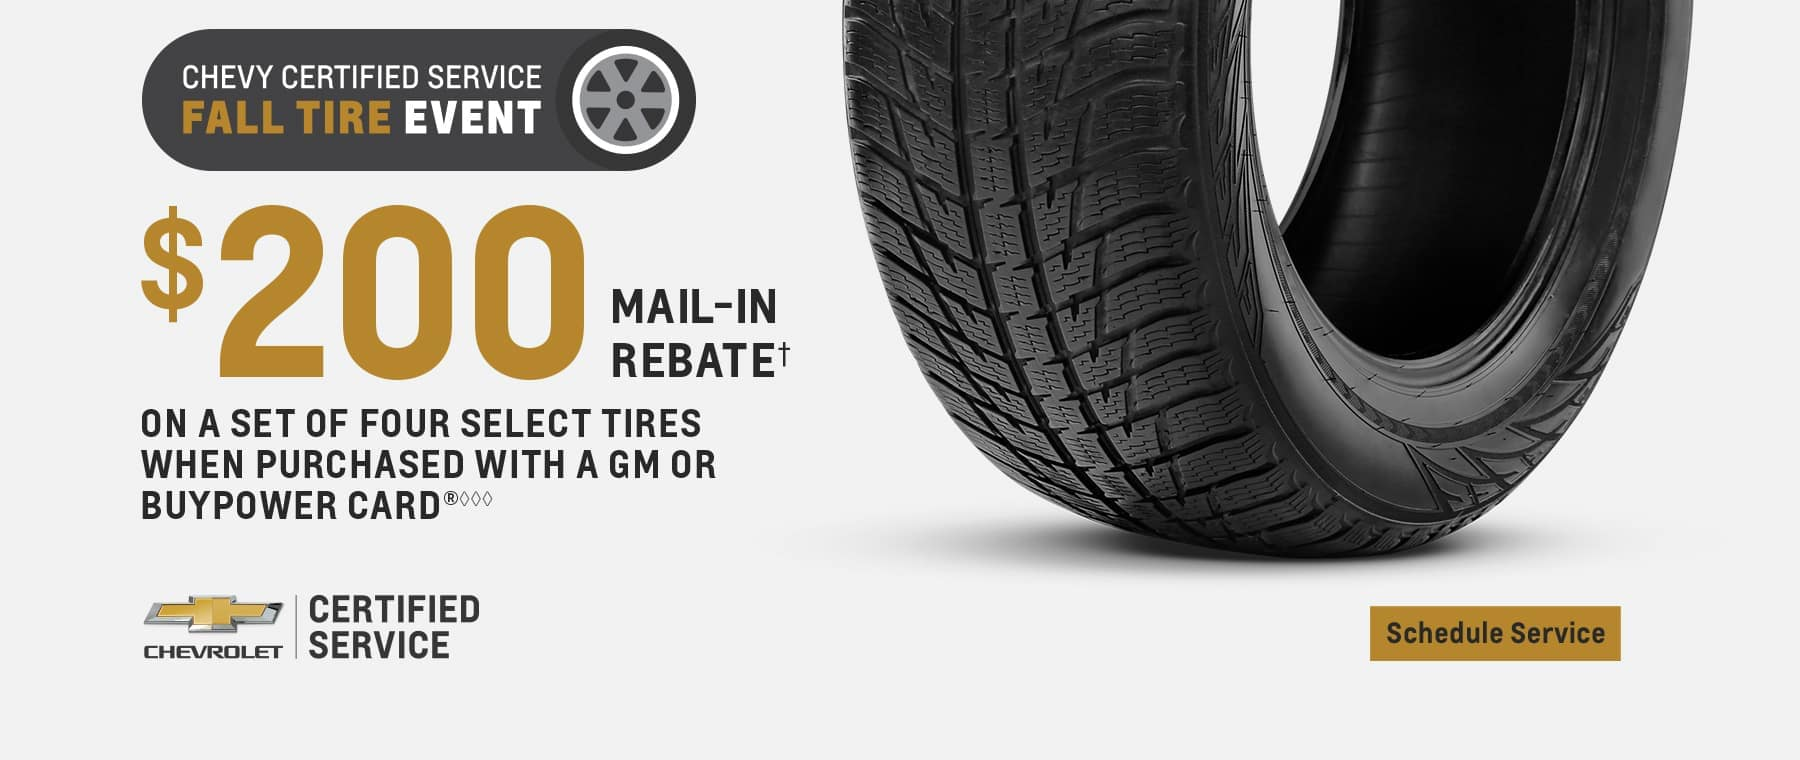 Chevy Fall Tire Event 2020